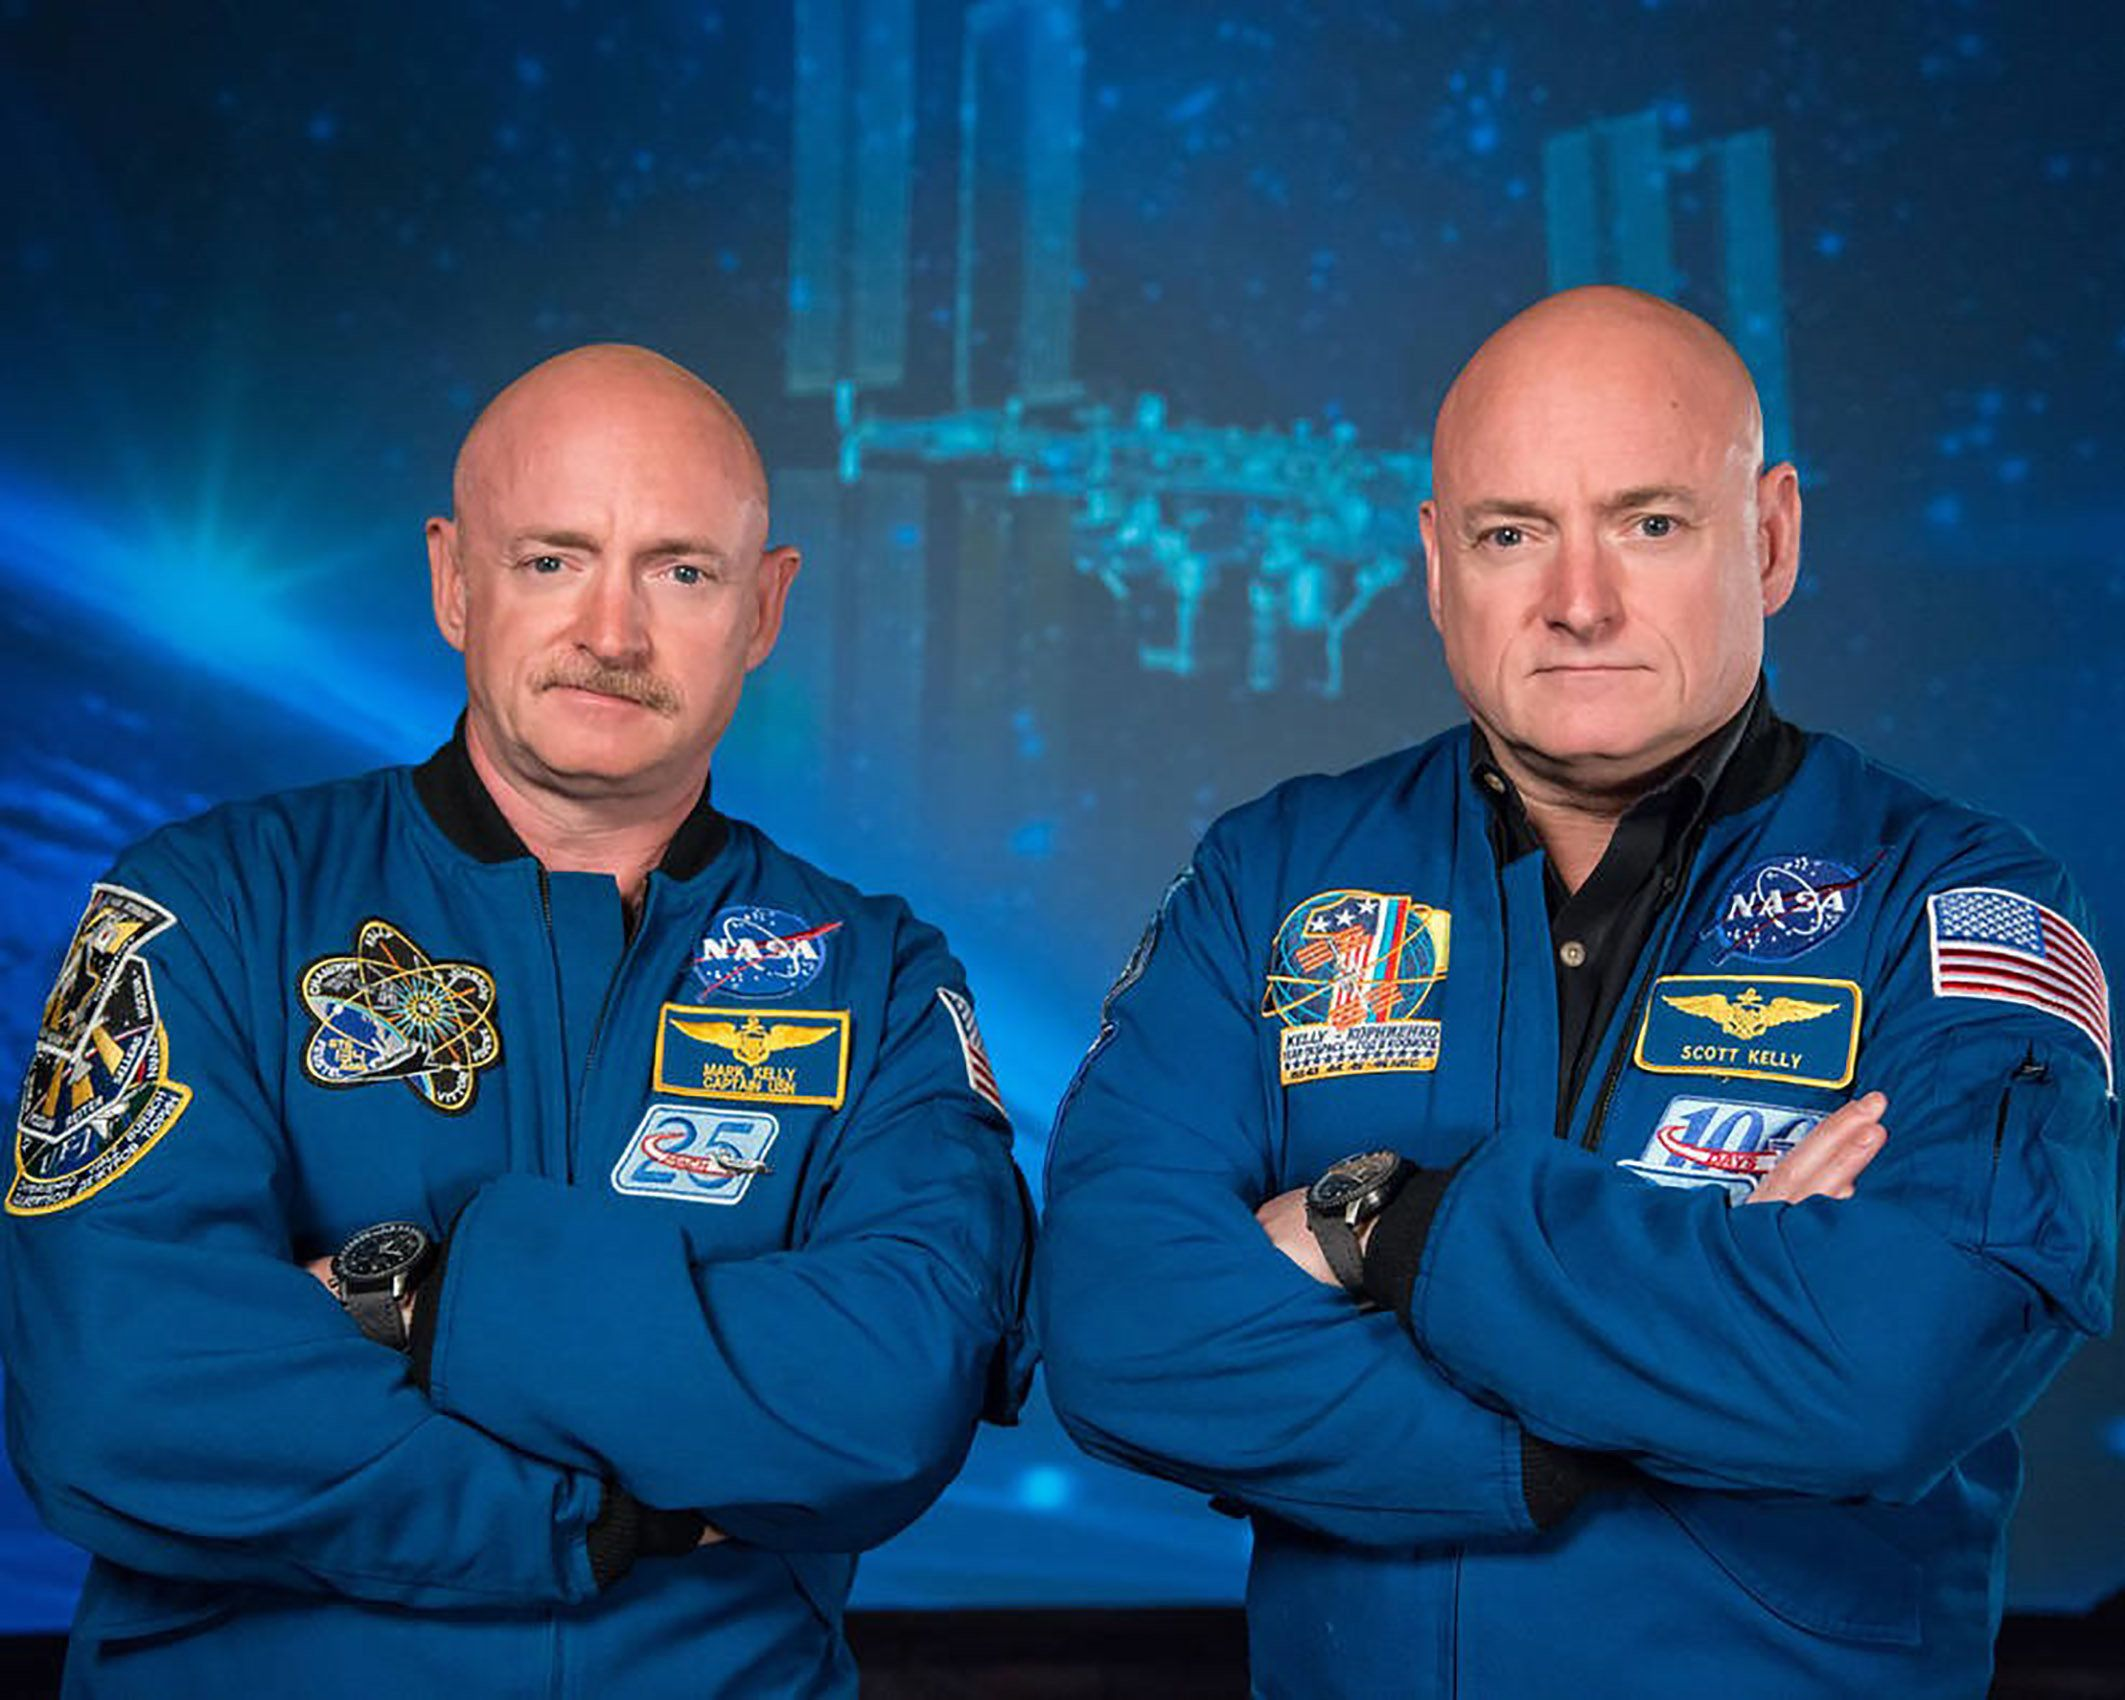 Former astronaut Scott Kelly (right) and his twin brother, former astronaut Mark Kelly (left), are seen in this NASA-supplied